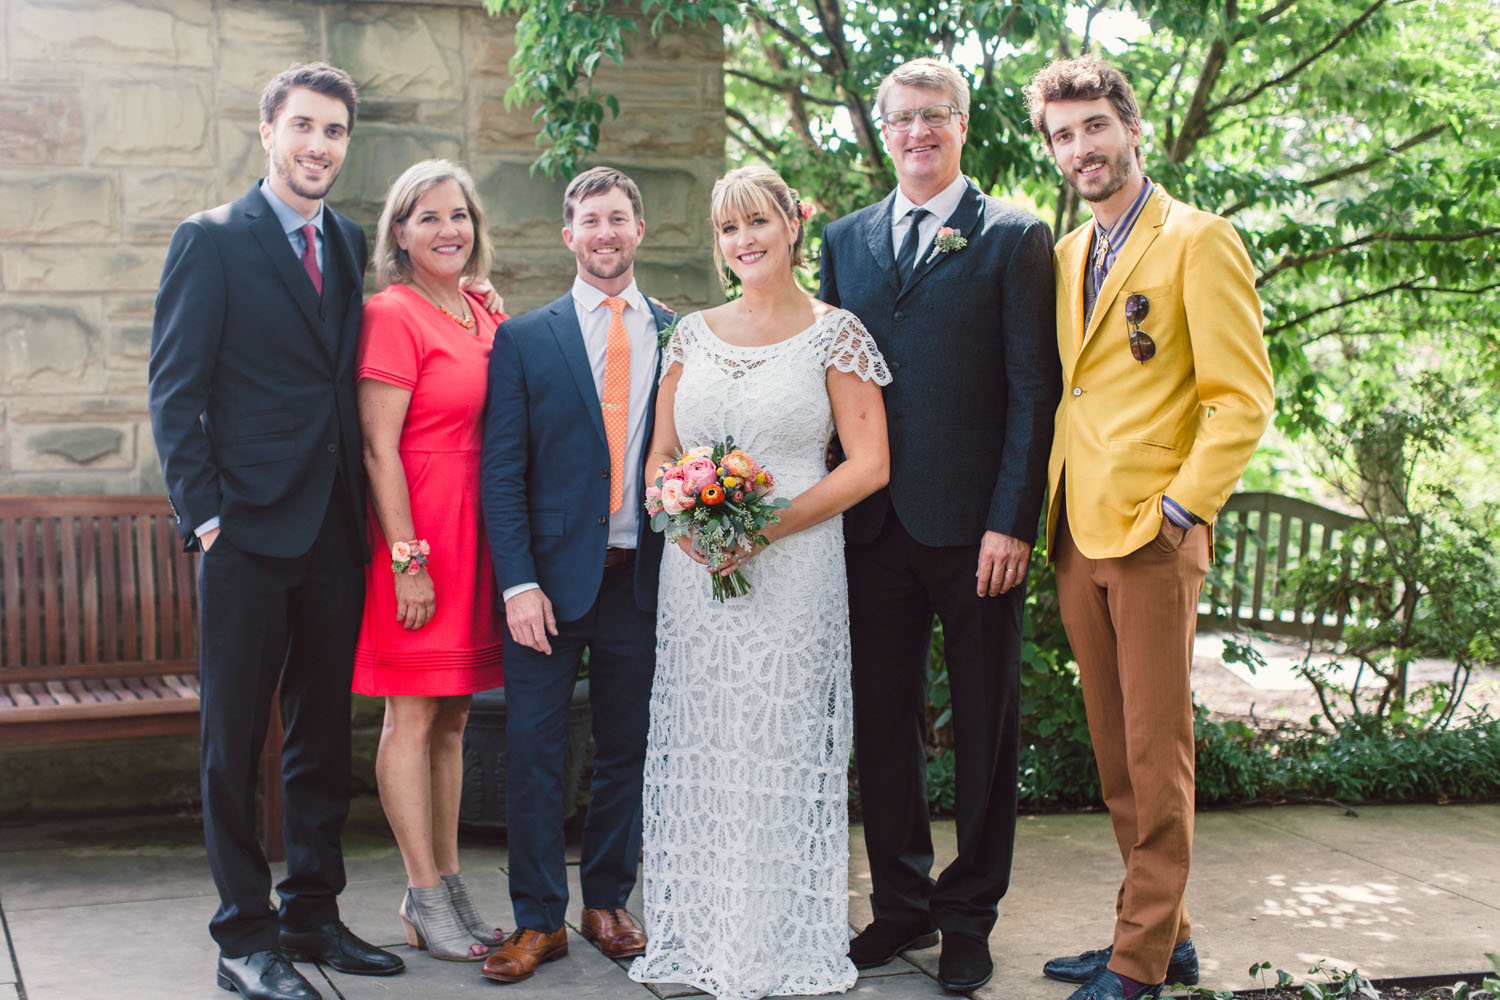 My family at  emily and Patrick's Wedding  in the fall of 2016. Left to right: Henry, Judy, Patrick, Emily, Me, and Charlie.